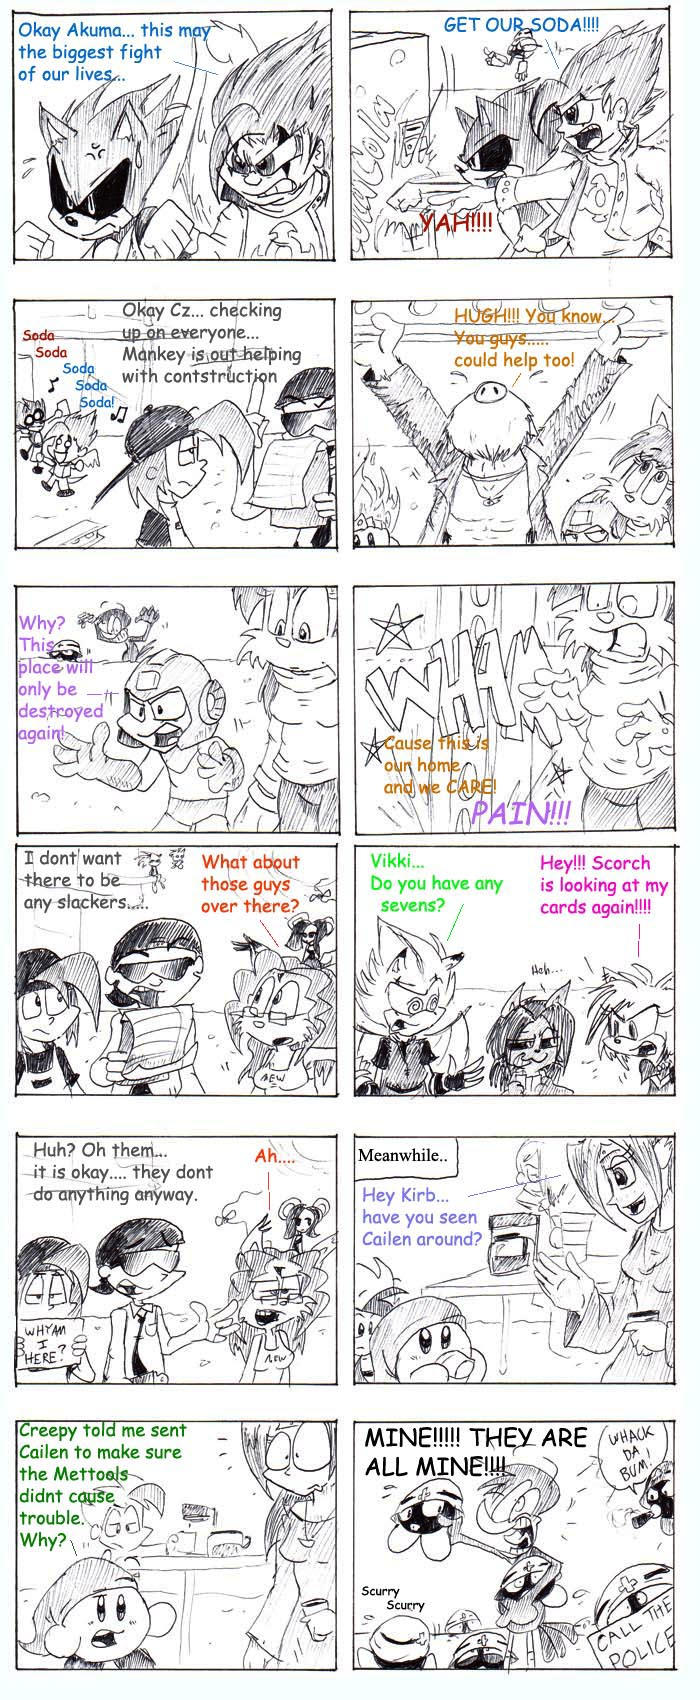 TFS Collab Improv Comic by cailencrow